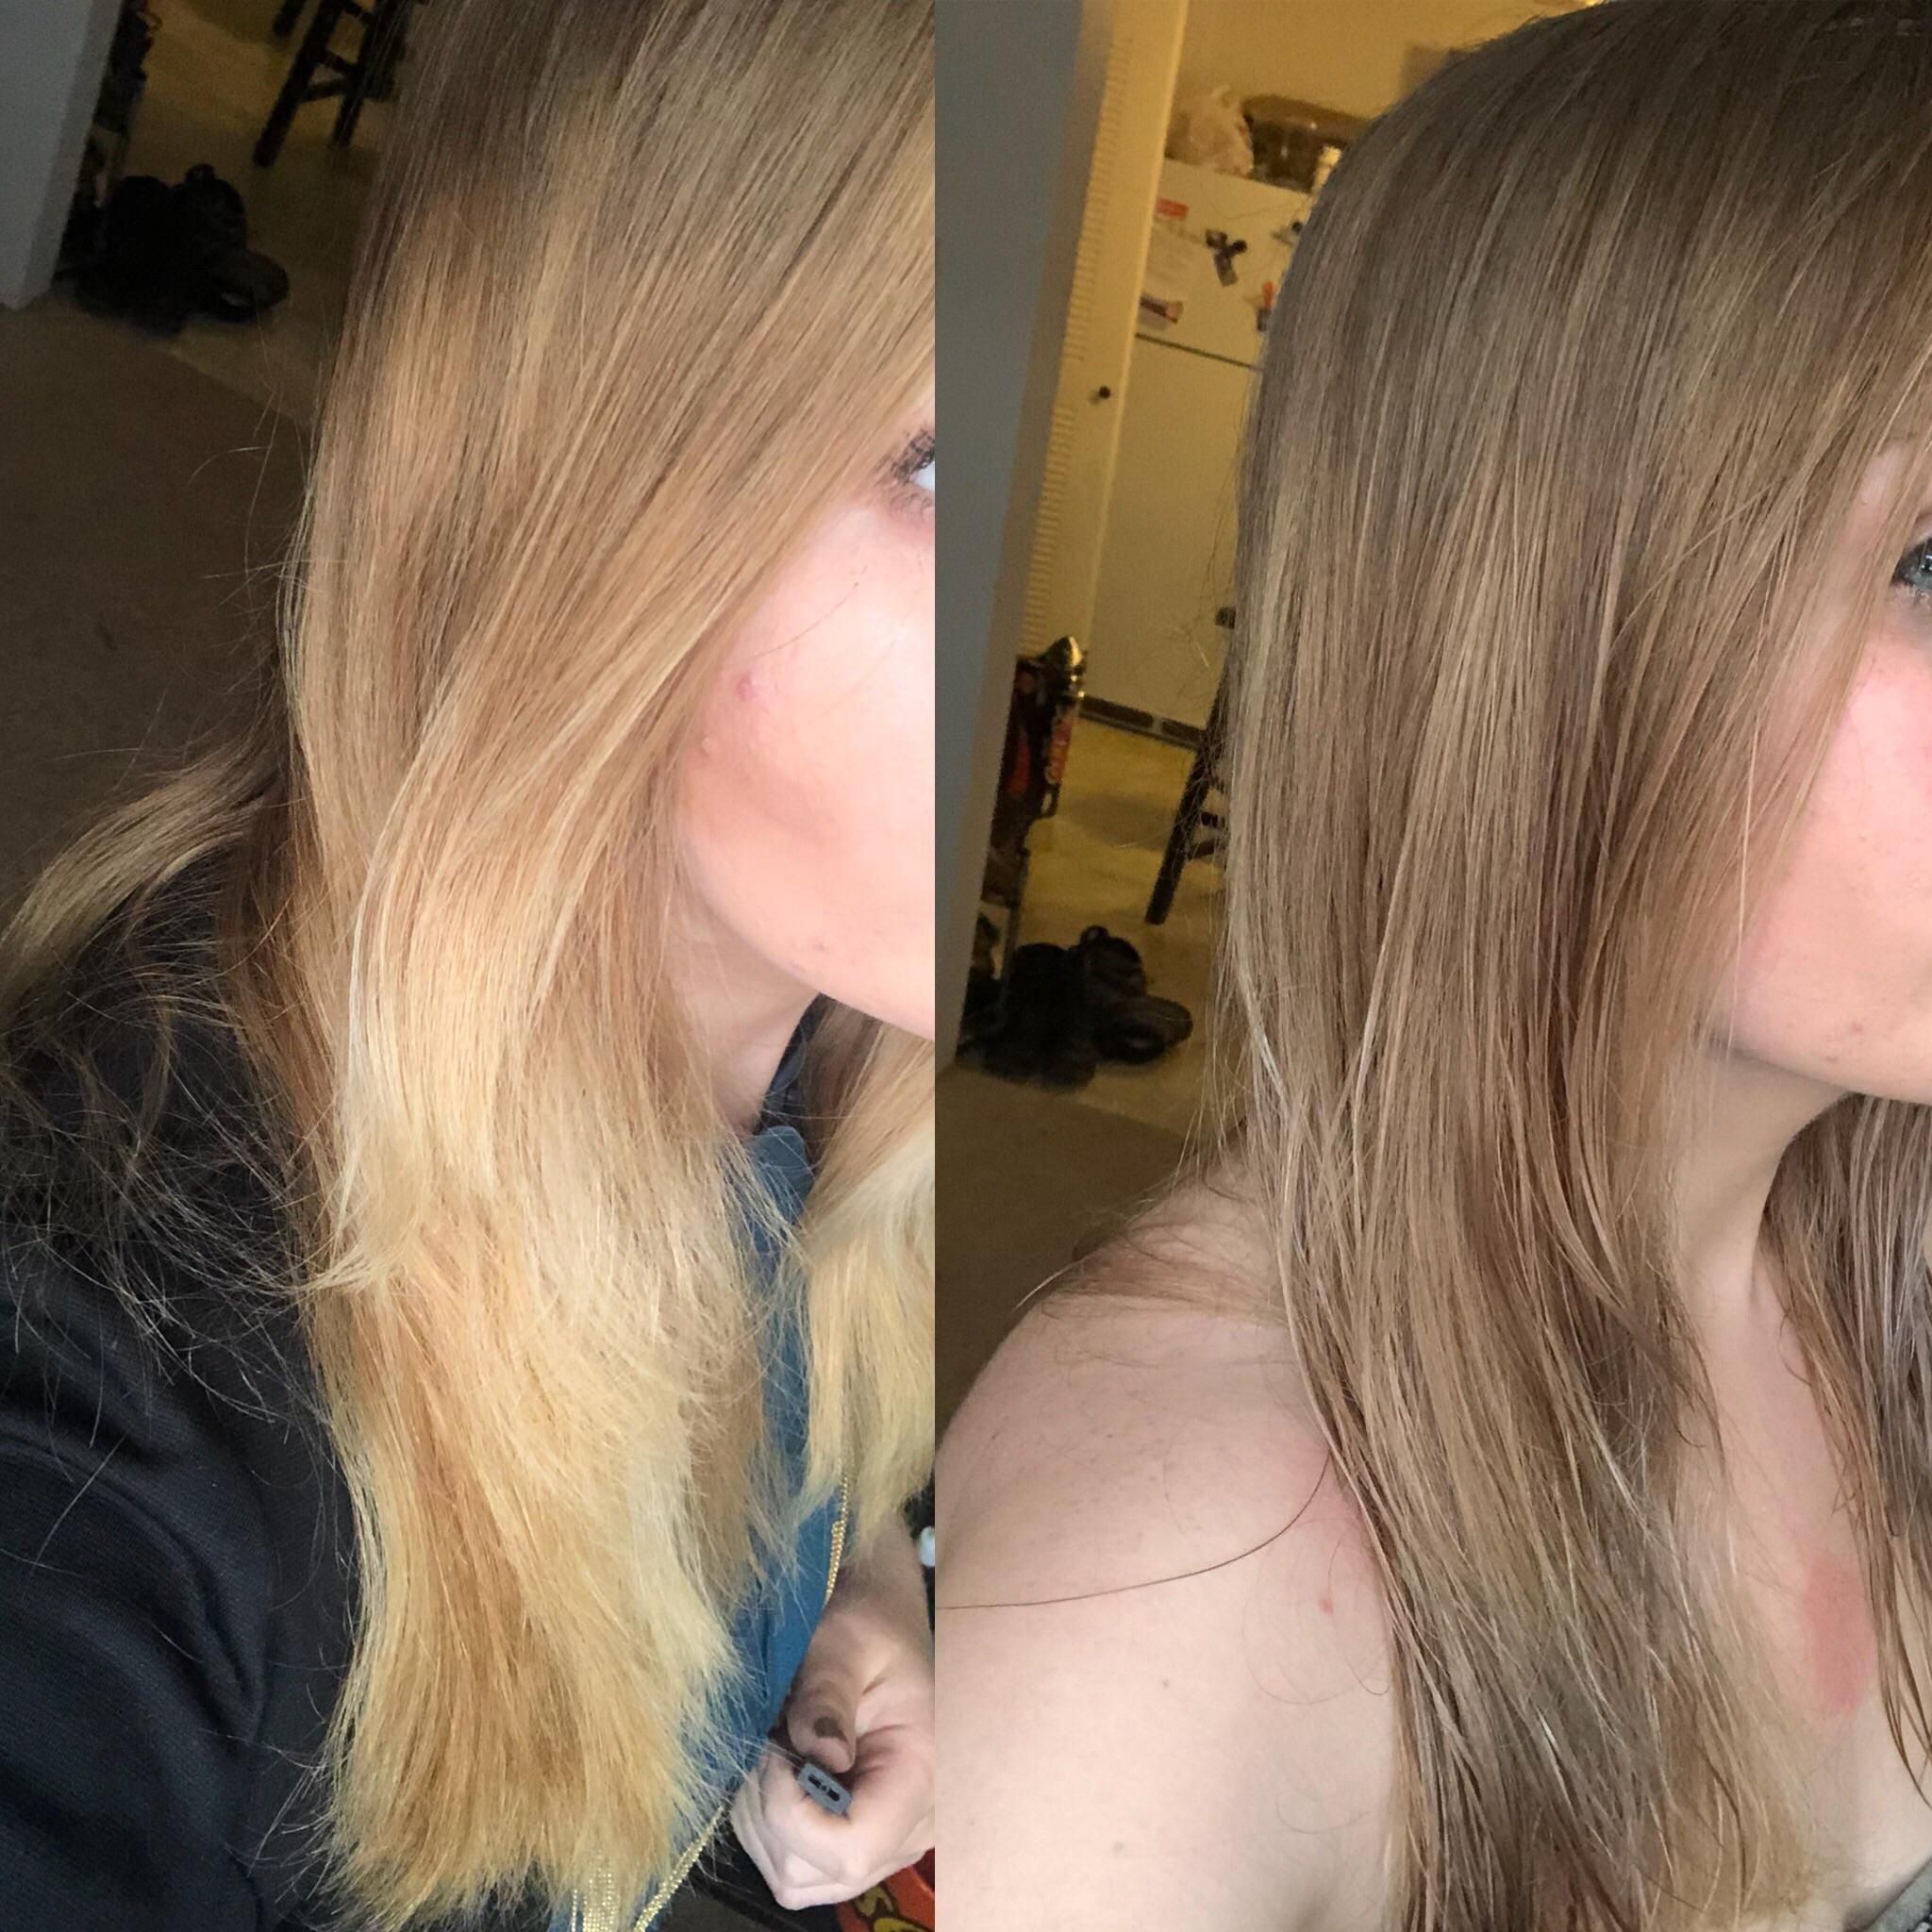 Wella T18 Toner Darkened My Hair And Now My Ombre Is Gone What Mistake Could I Have Possibly Made That Caused This To Hap Wella T18 T18 Toner Wella Toner T18